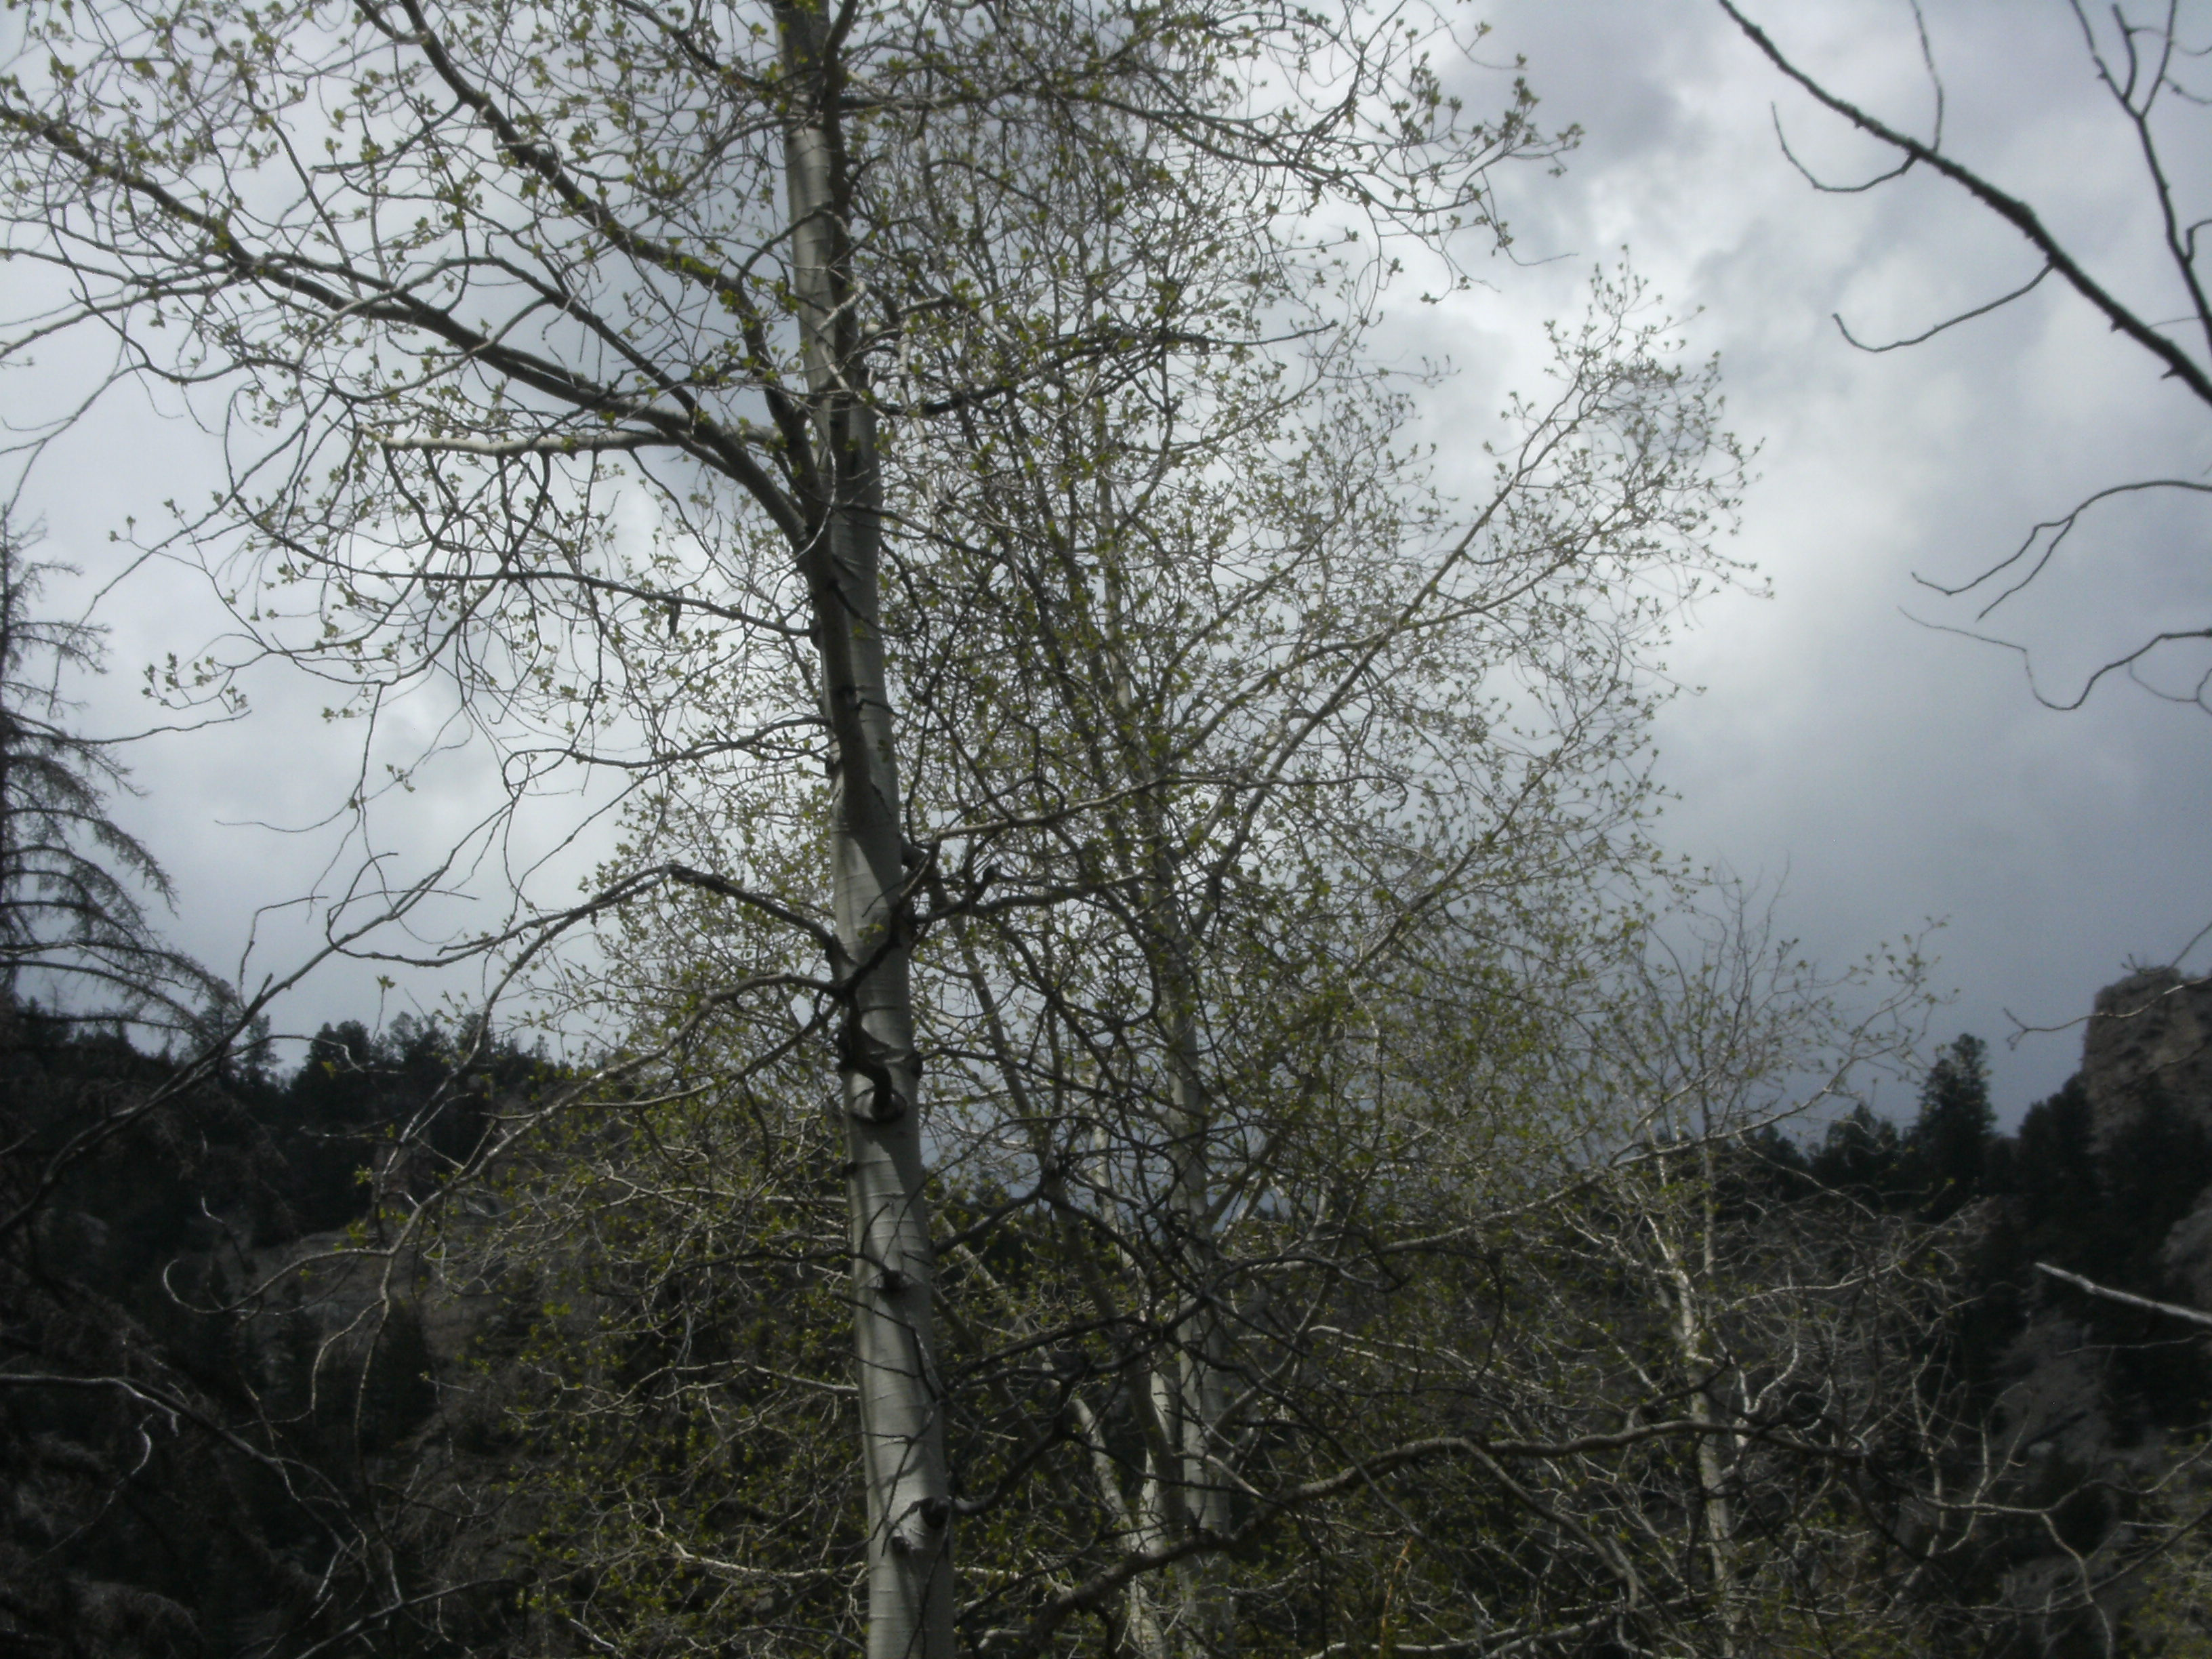 Aspens starting to bud out.